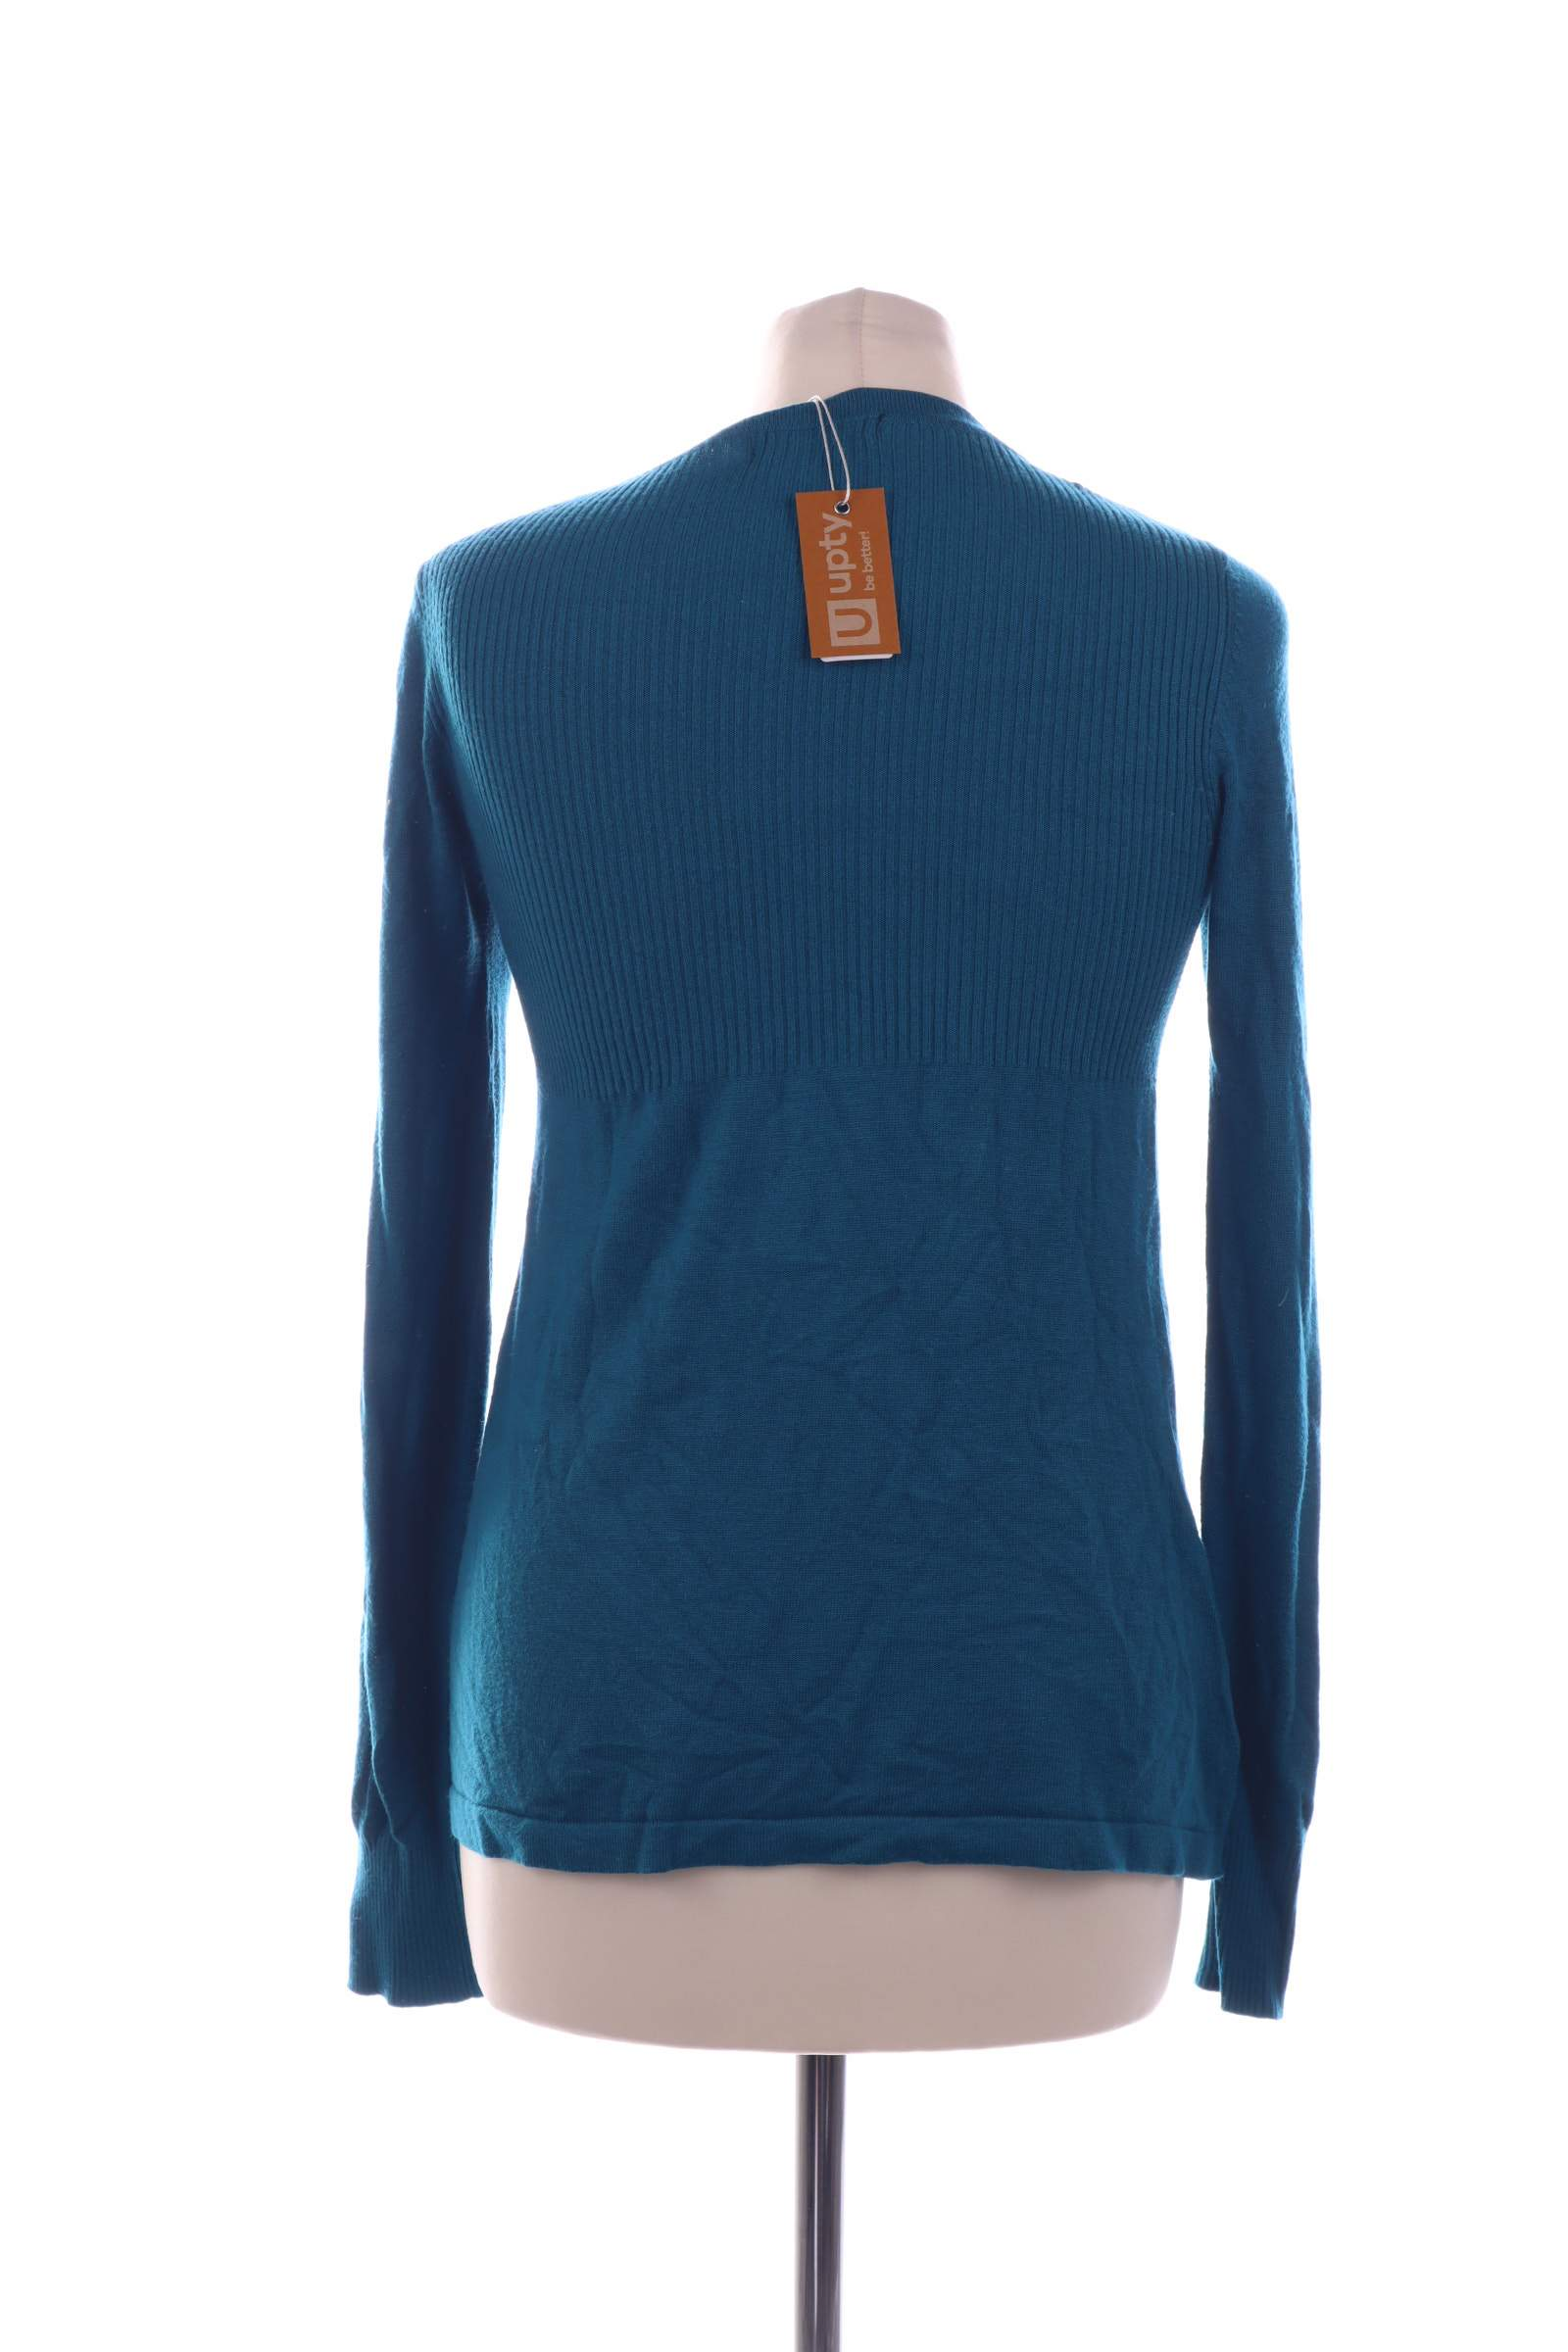 Atmosphere Blue Sweater - upty.store